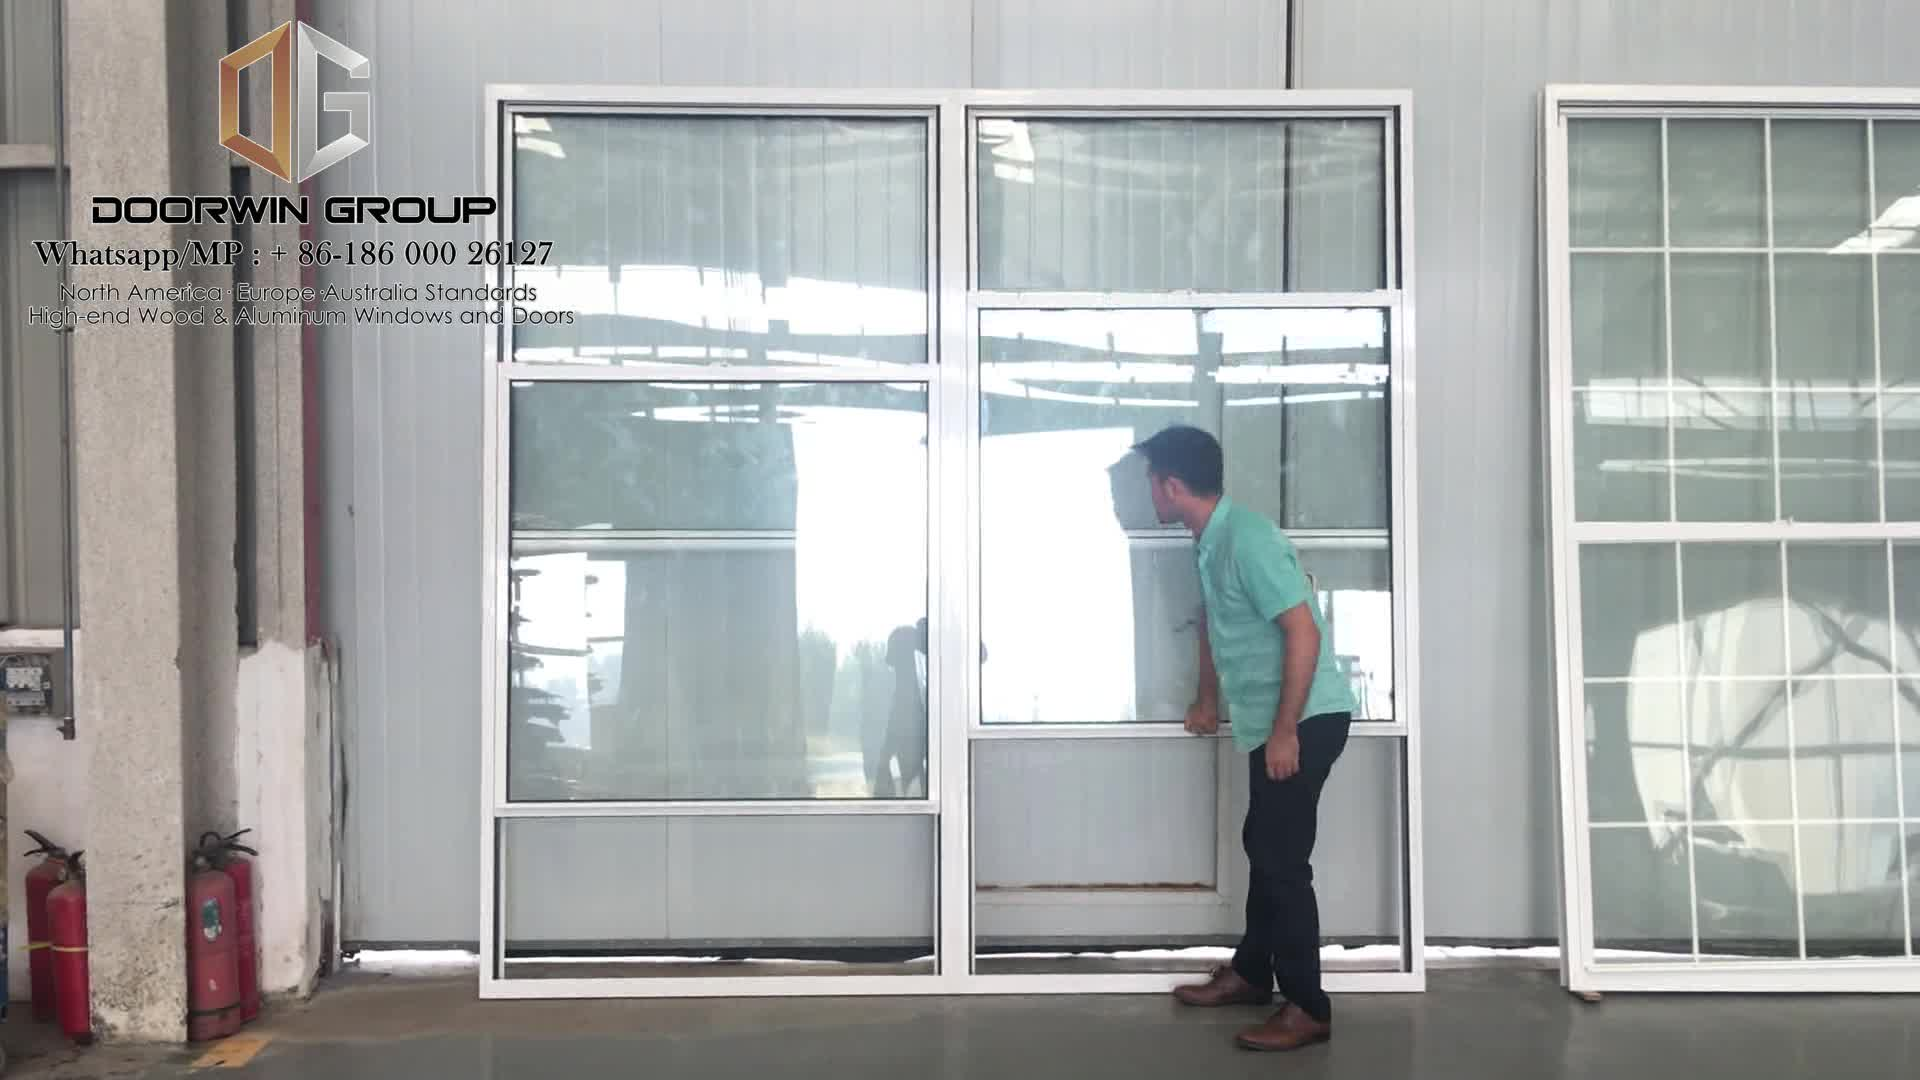 Doorwin windows and doors-2019 Selling the best quality cost-effective products aluminum windows and doors in dubai